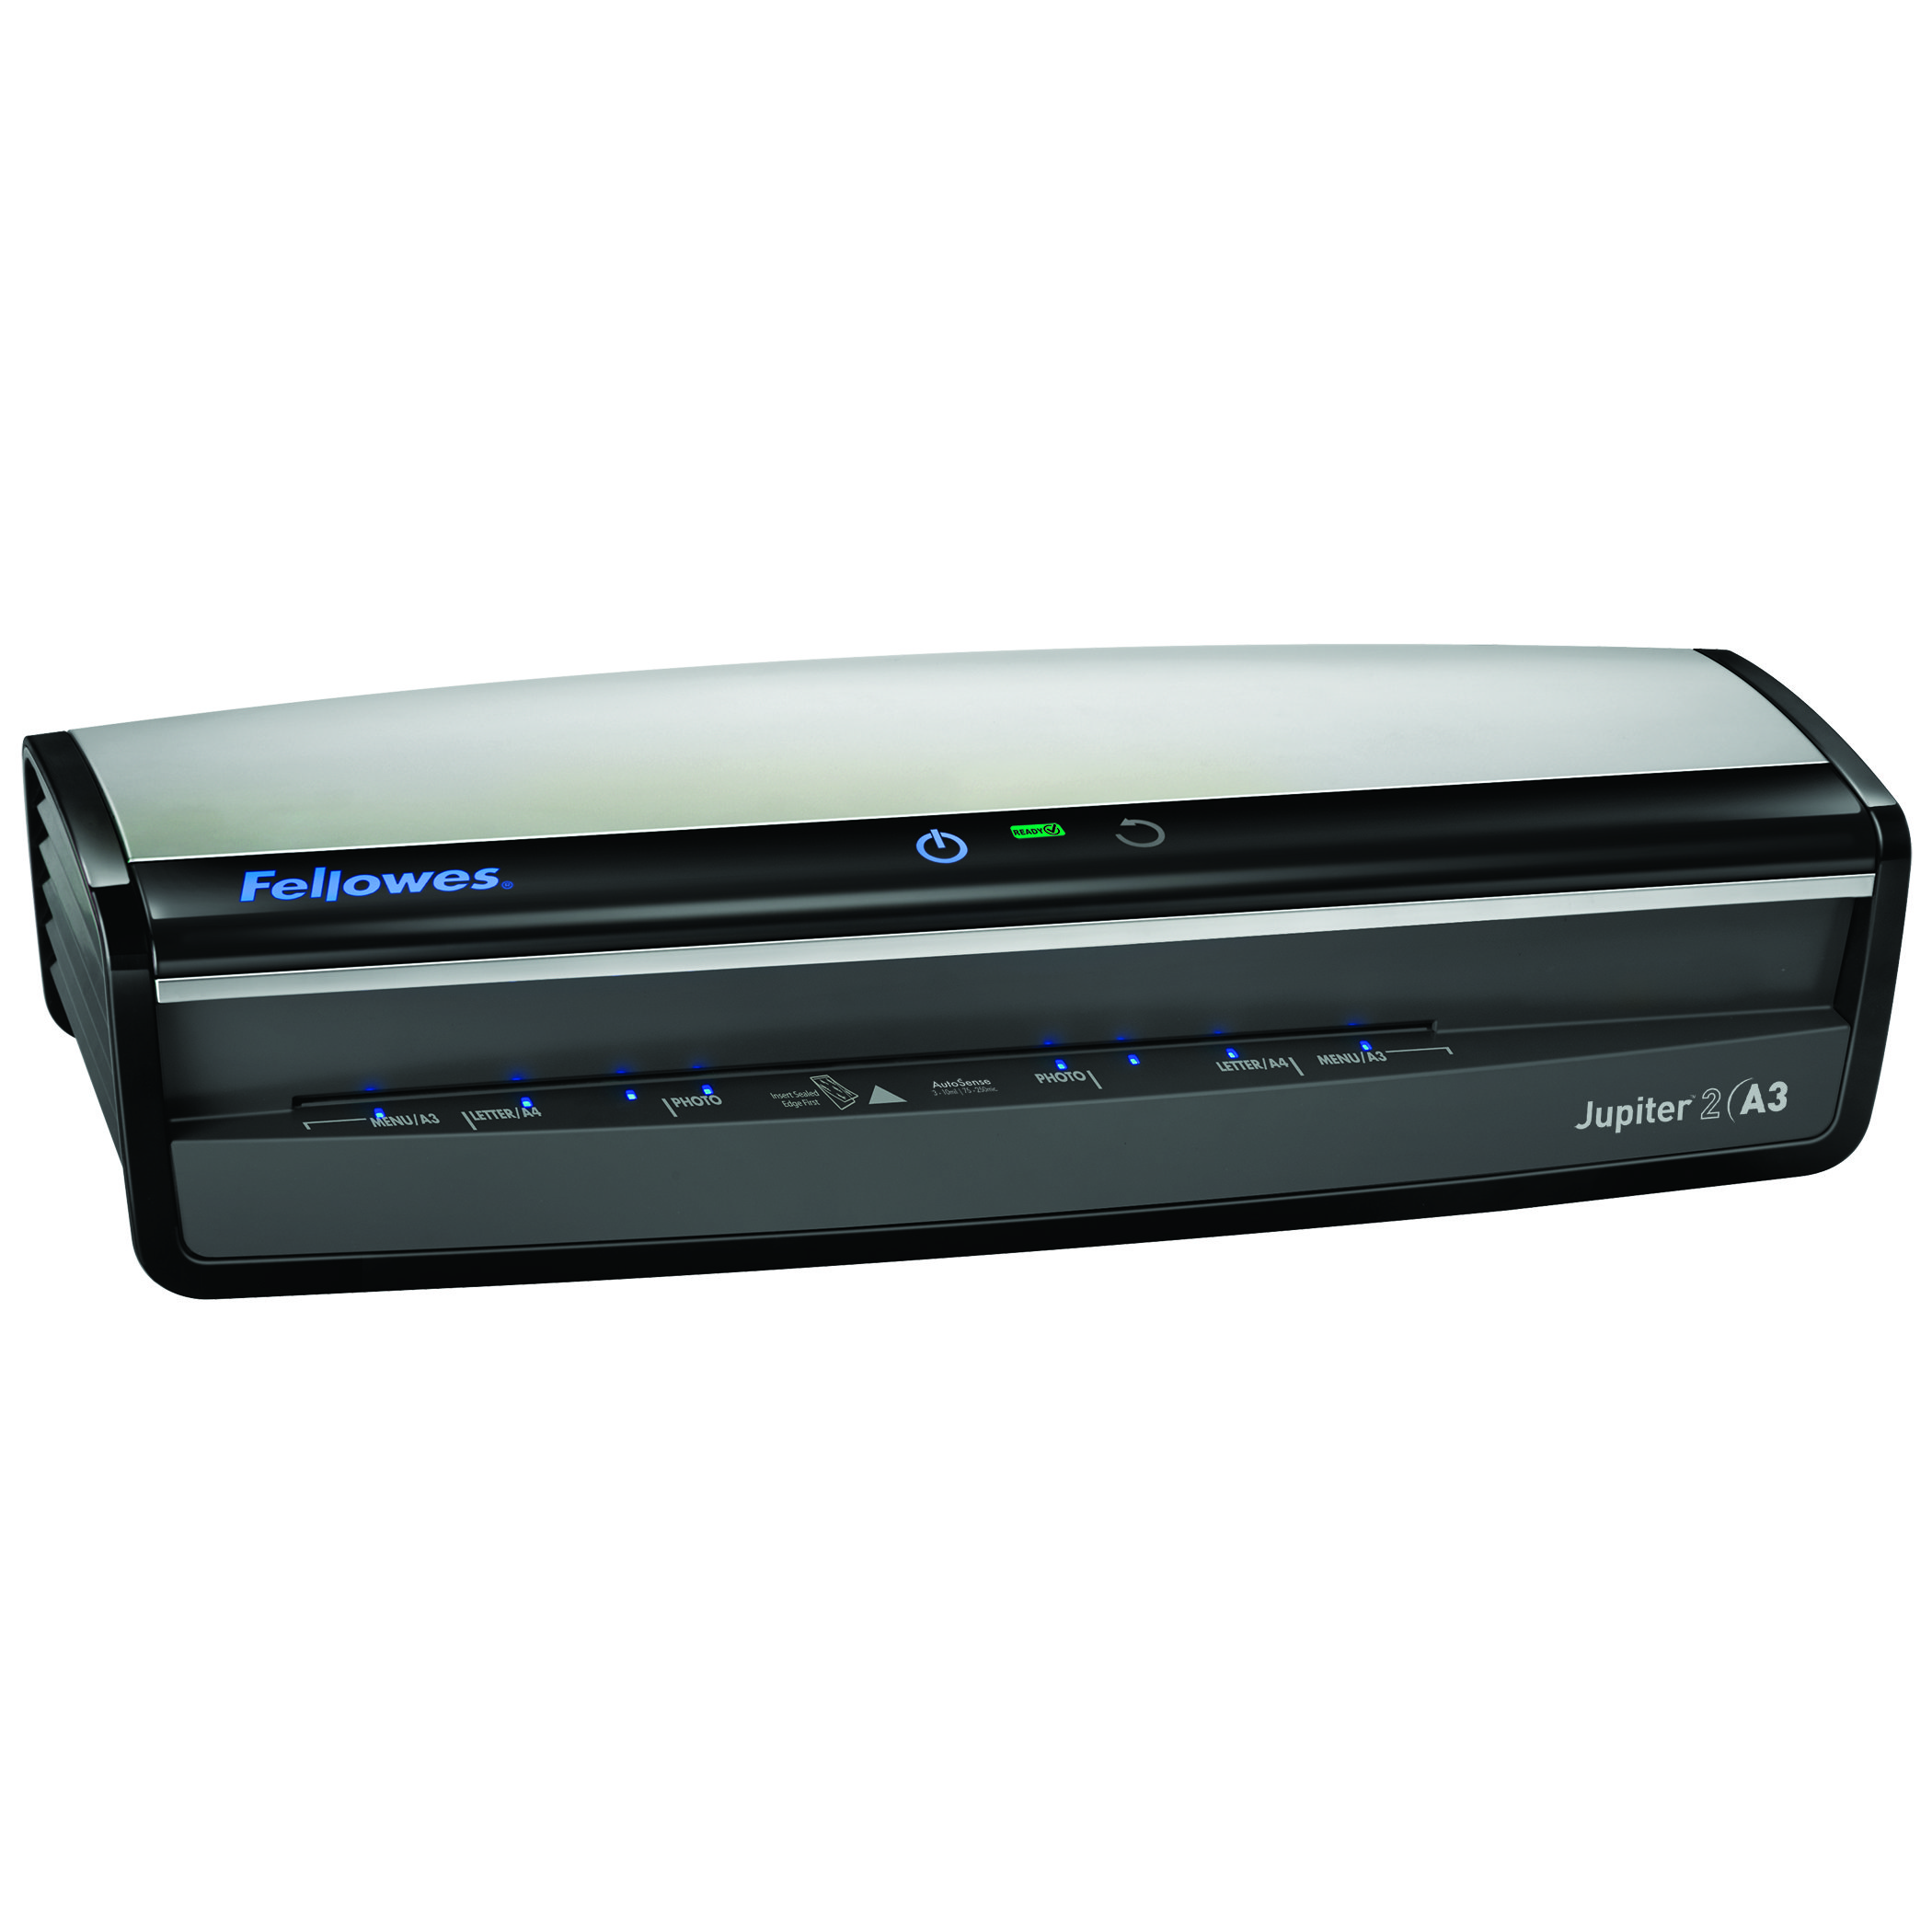 Laminating Machines Fellowes Jupiter 2 A3 Laminator